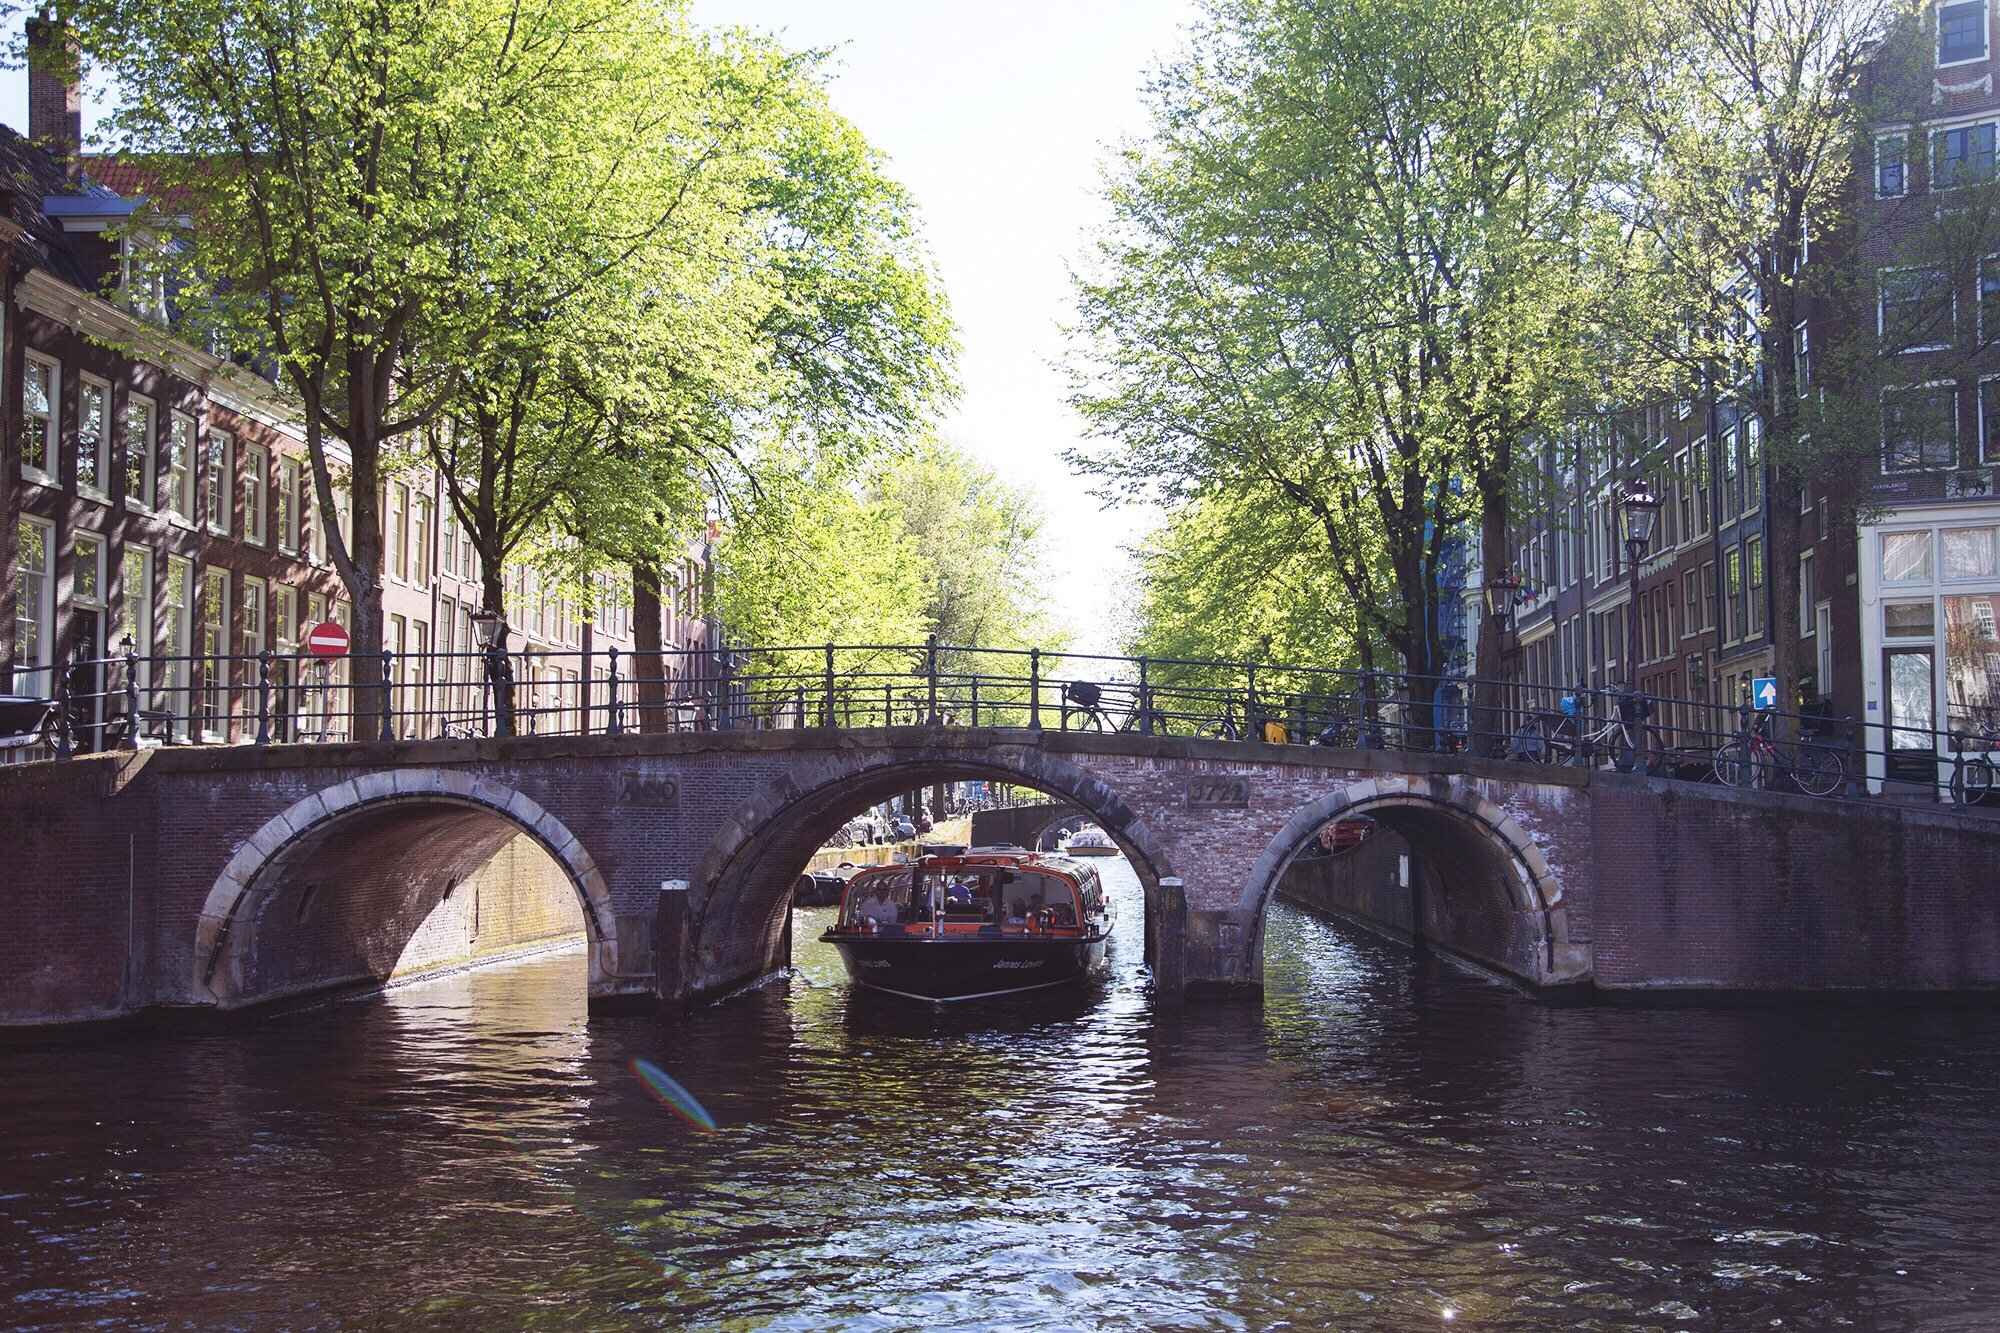 16 Instagrammable Amsterdam Spots To Fuel Your Travel Photo Addiction